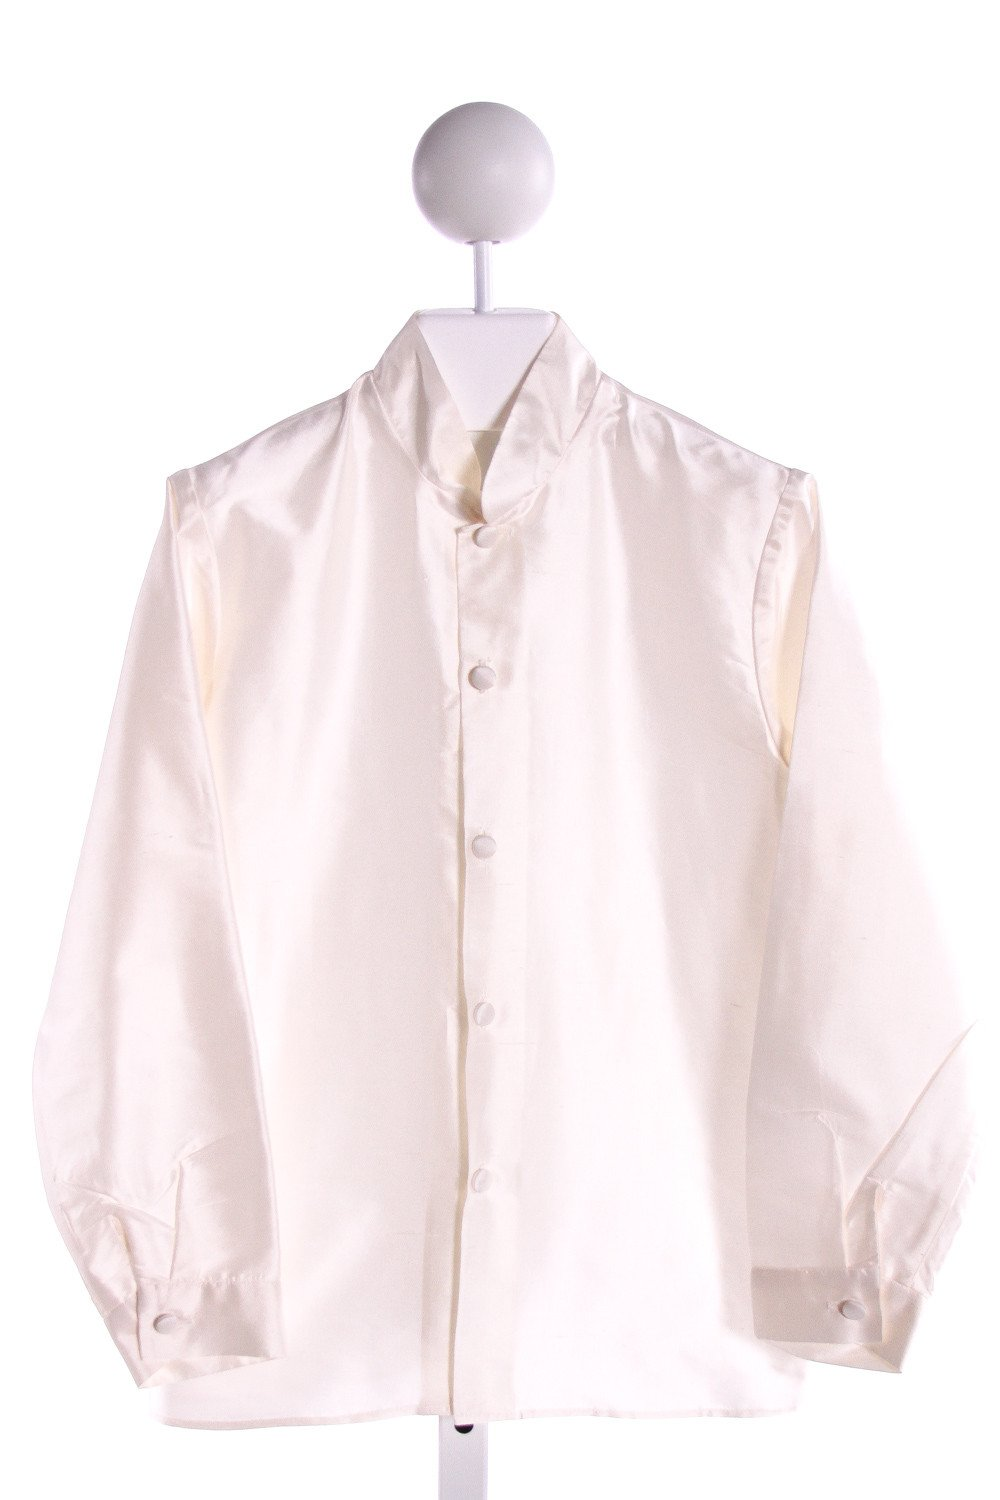 LITTLE BEVAN  IVORY SILK   CLOTH LS SHIRT